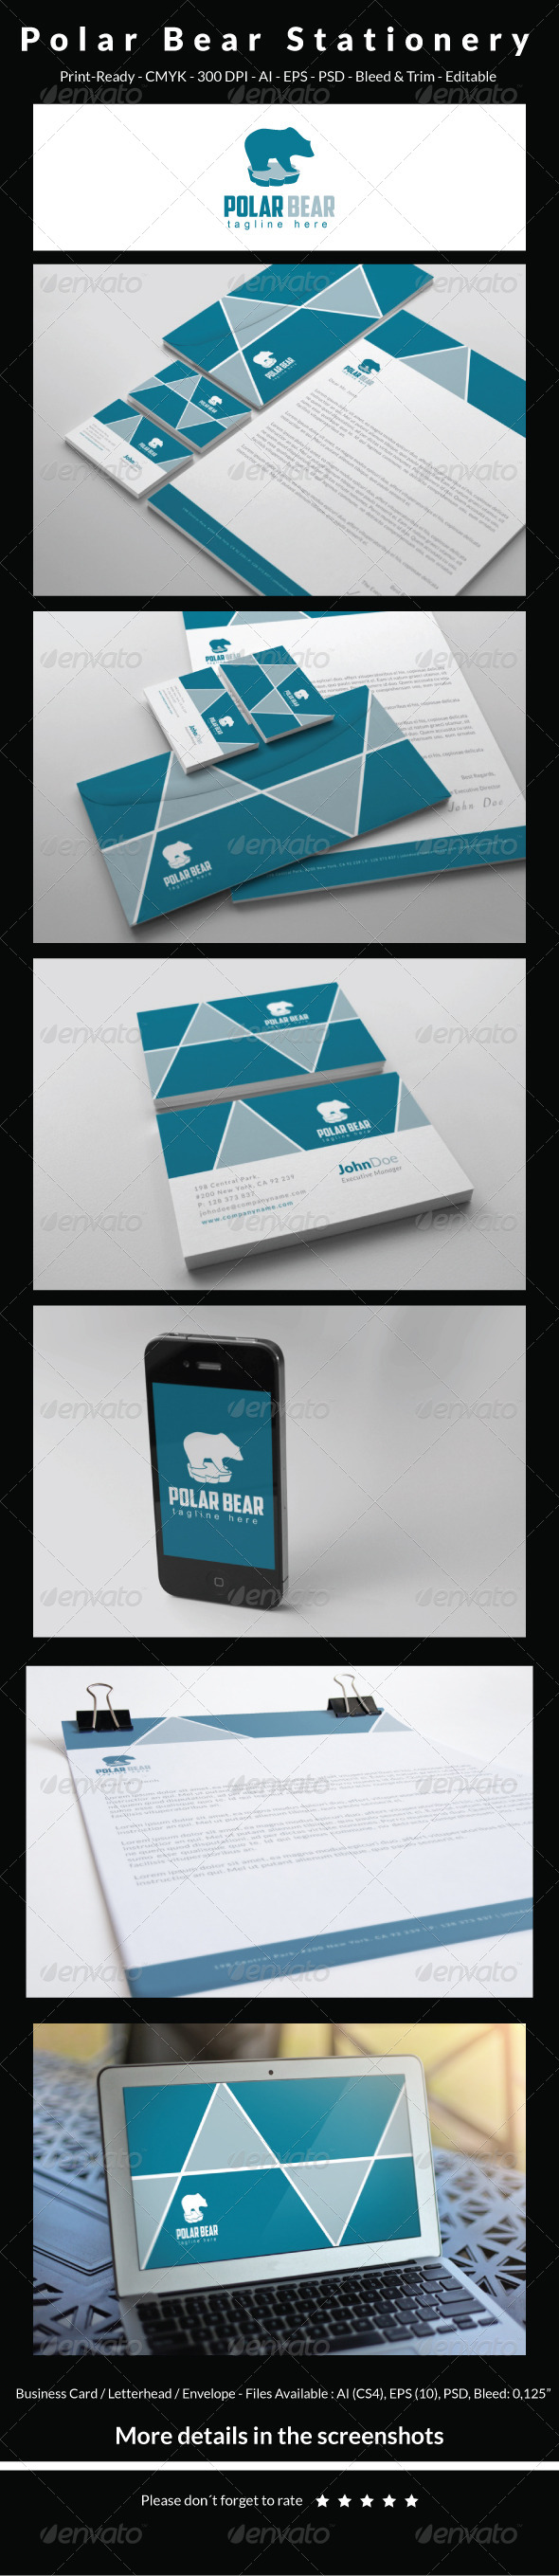 Polar Bear Stationery - Stationery Print Templates